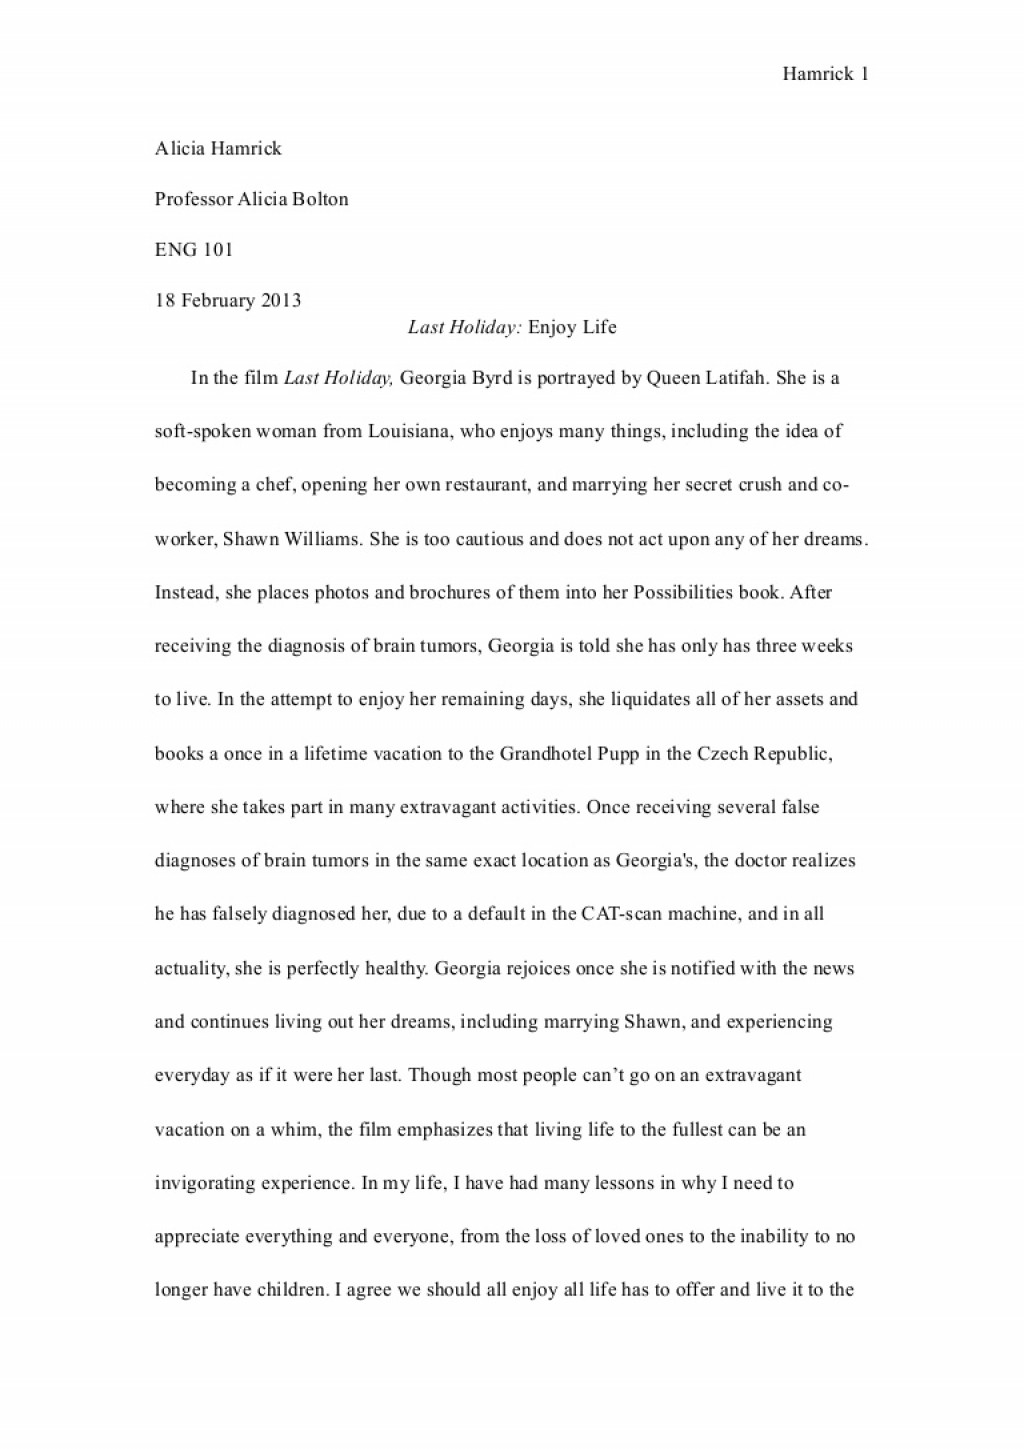 018 Eng101essay1revisied Phpapp02 Thumbnail Essay Example Vs Breathtaking Paper Term Personal Research What Is The Difference Persuasive Large